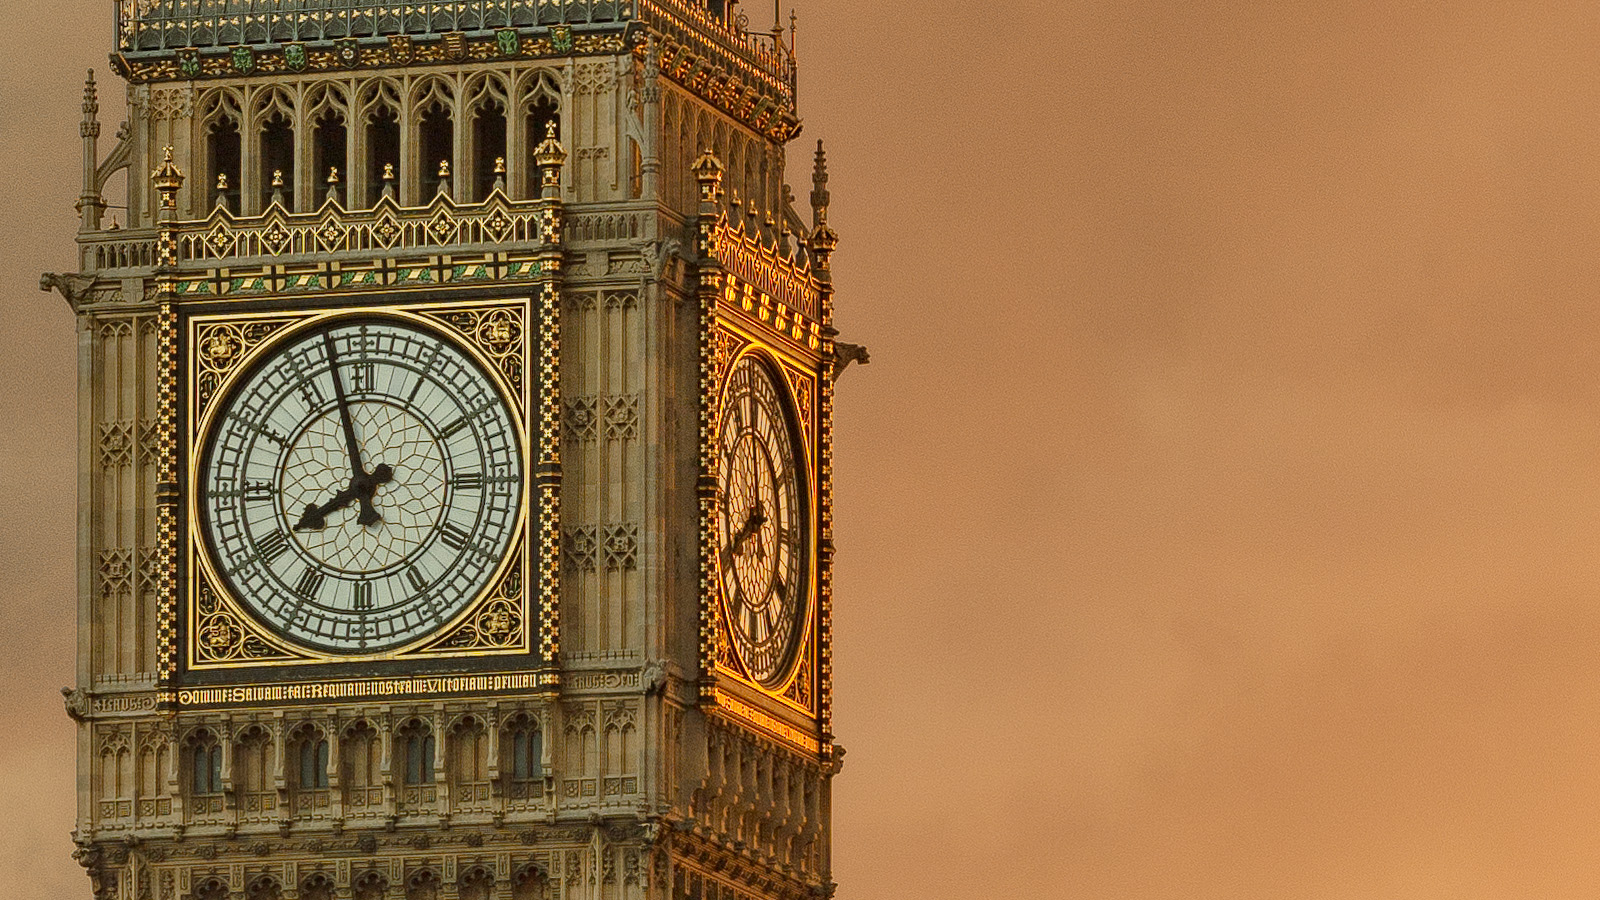 Palace Of Westminster Detail - Close up of Big Ben. London Fine Art Print.